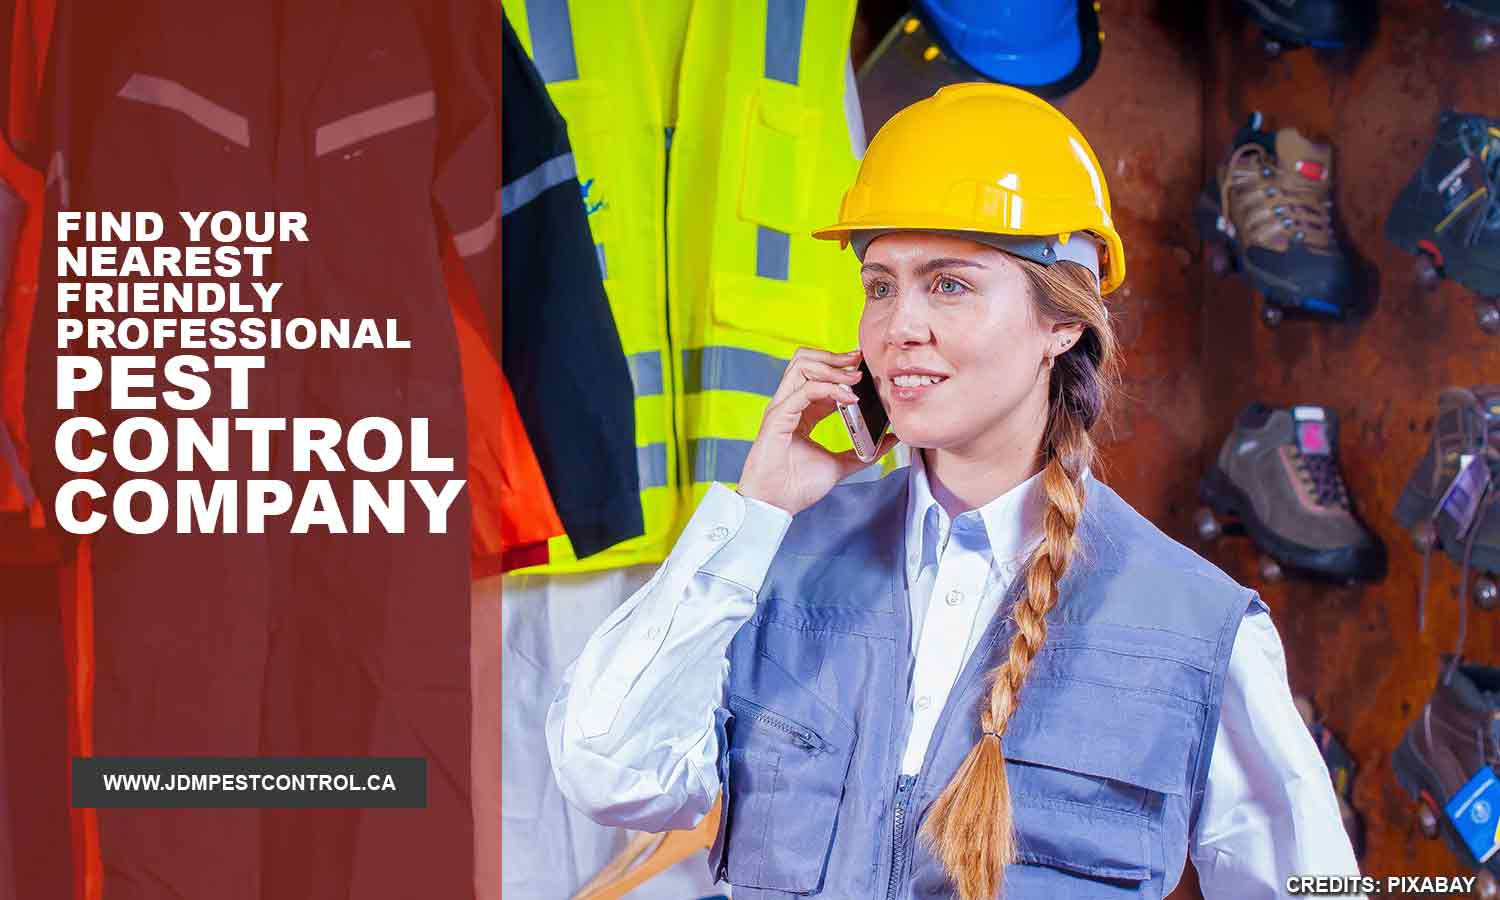 Find your nearest friendly professional pest control company